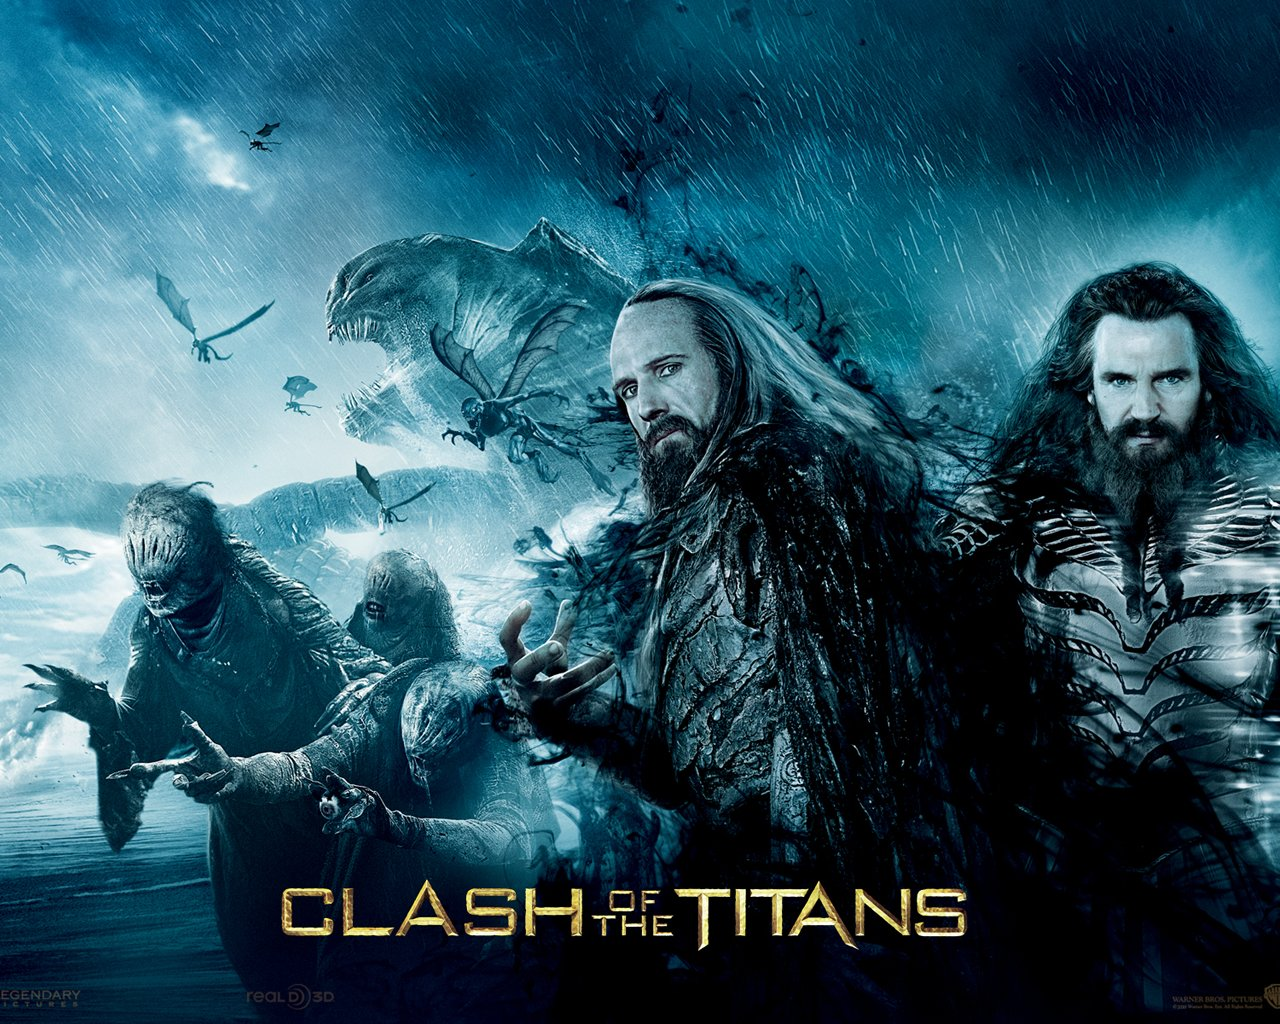 greek myth movie clash of the titans 2010 american epic films american fantasy. Black Bedroom Furniture Sets. Home Design Ideas